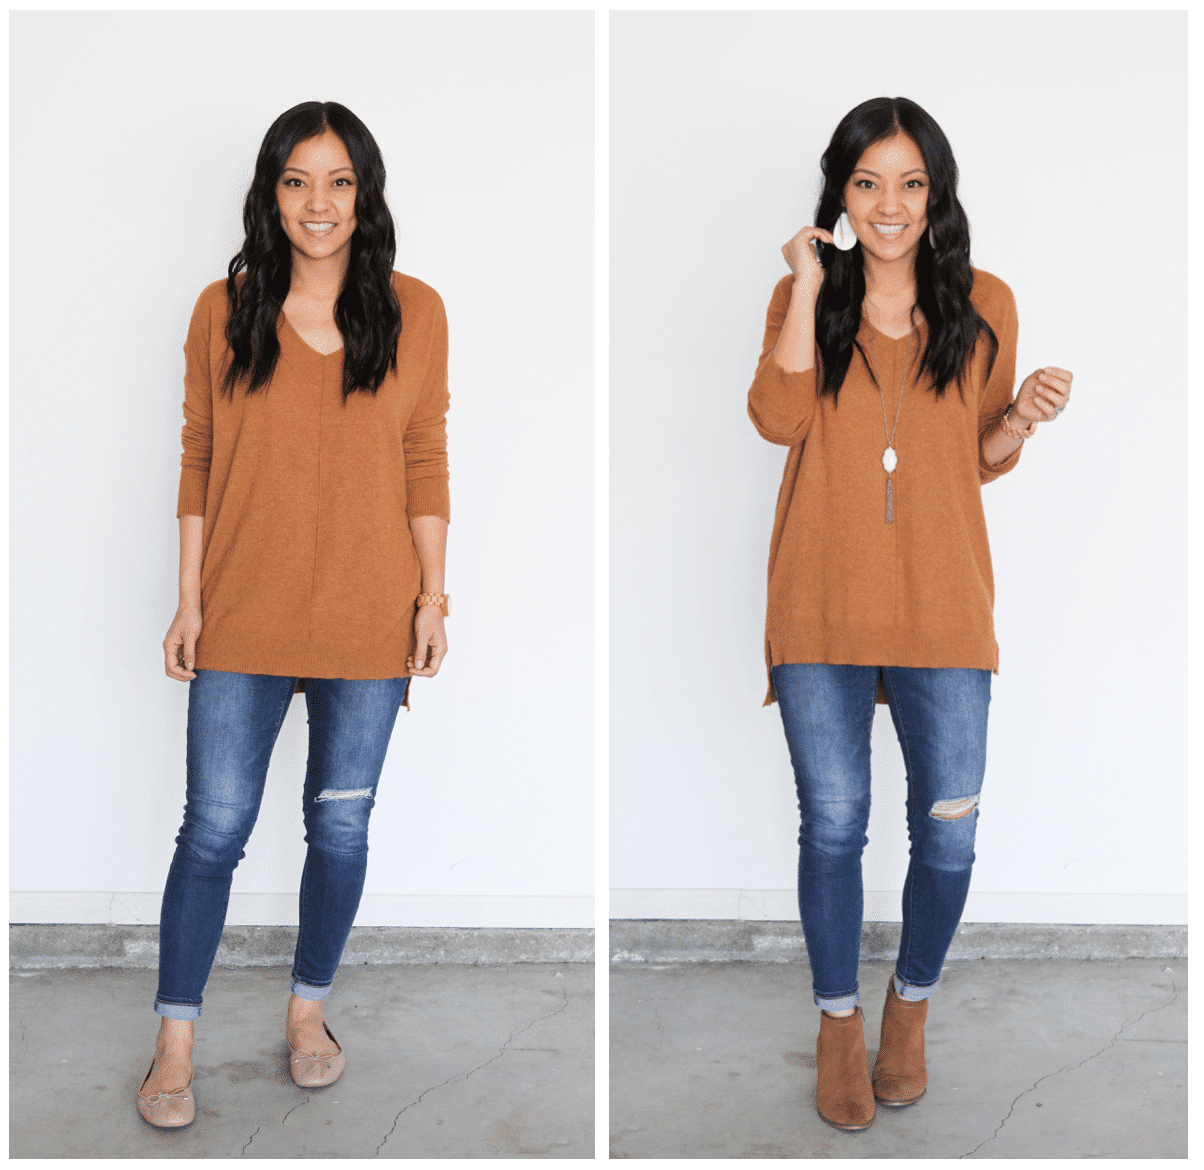 Plain to Polished Outfit: Camel Pullover and Distressed Jeans